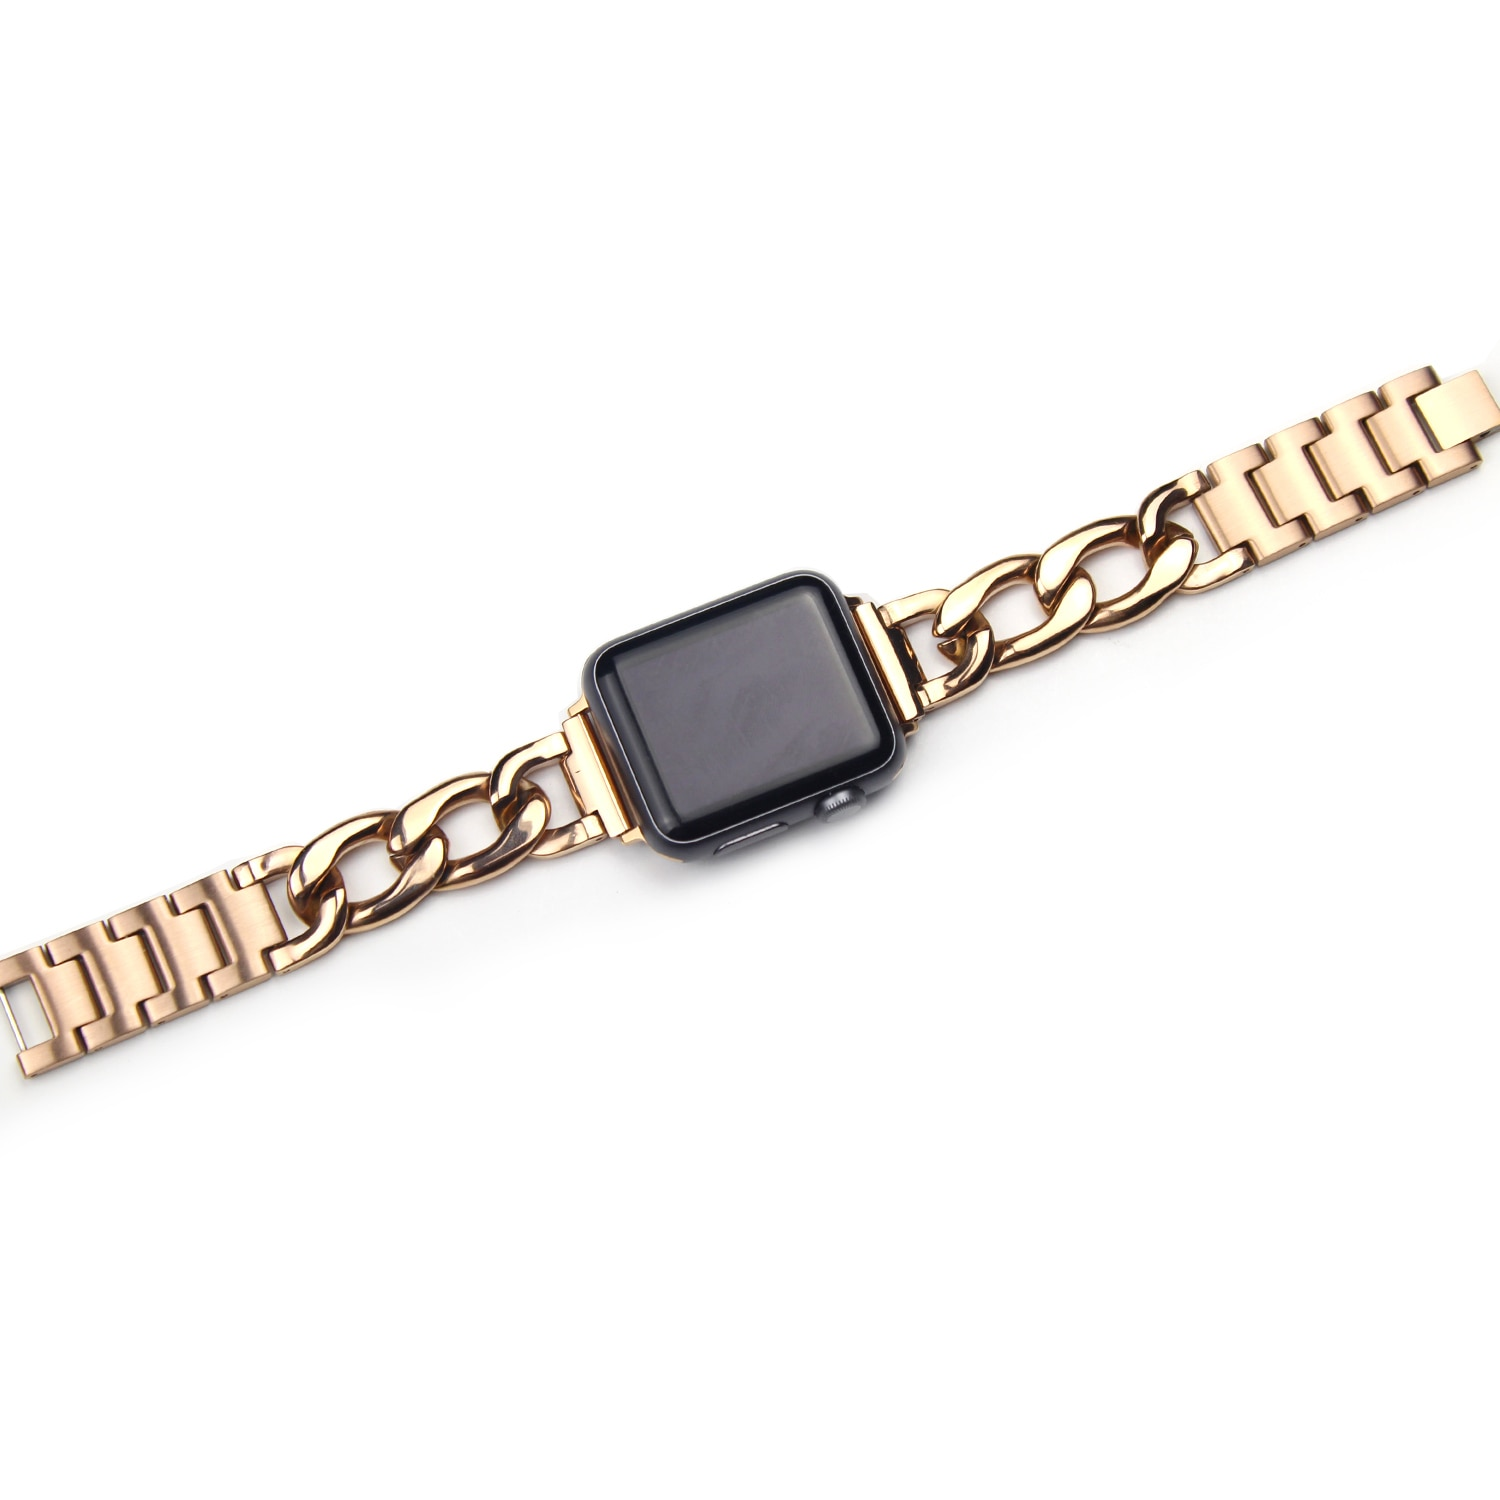 for apple watch band 44mm 40mm 38mm 42mm metal bracelet stainless steel strap for apple watch series se 6 5 4 3 2 1 watchband chain Strap Stainless Steel Band for Apple Watch 6 SE 5 4 40mm 44mm Watchband Bracelet for Iwatch Series 6 5 4 3 2 38mm 42mm